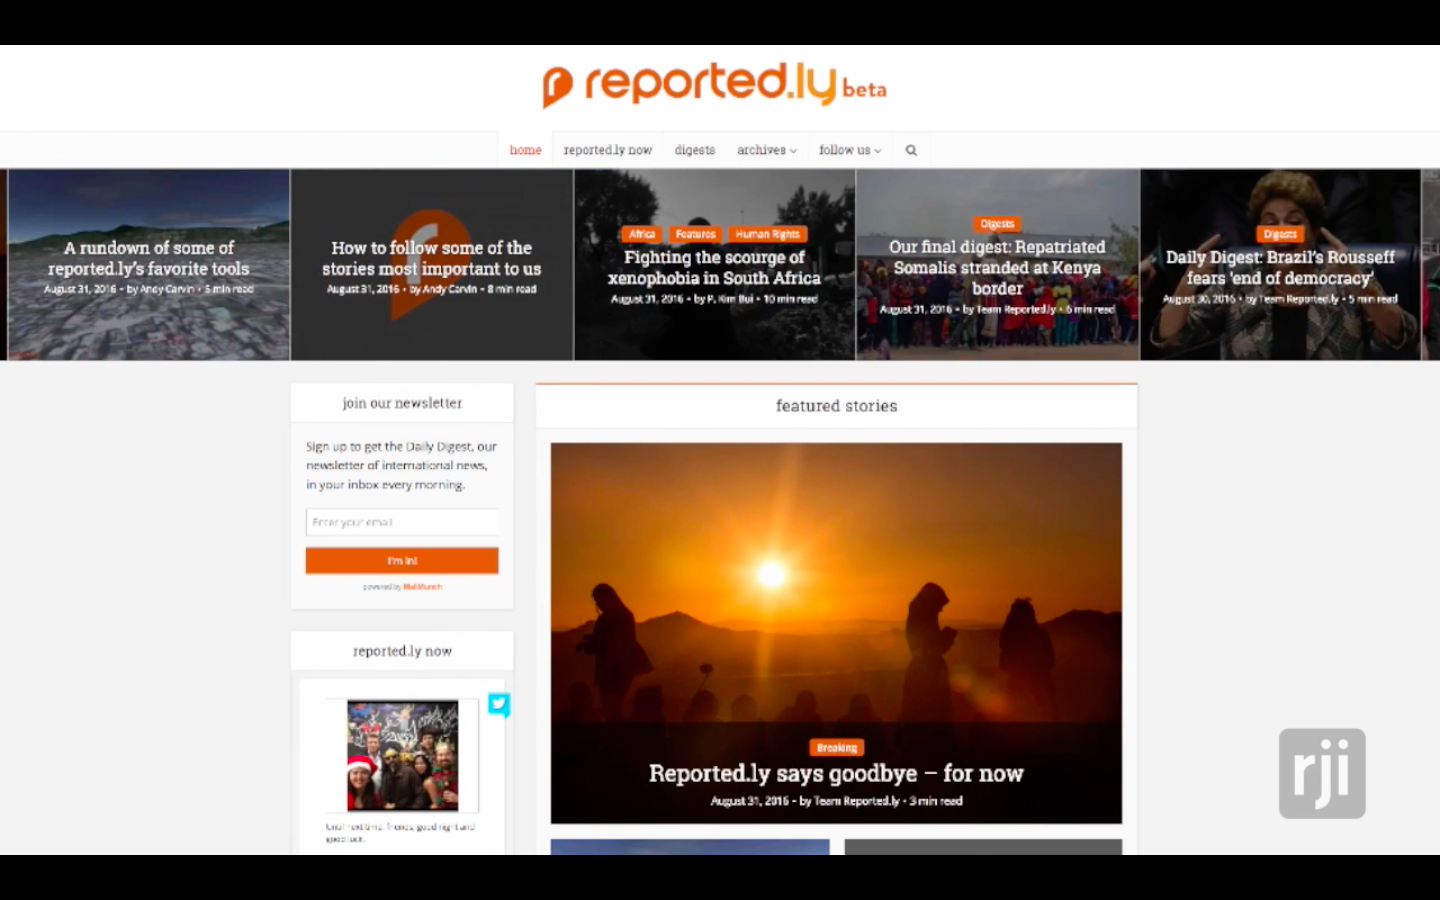 Reported.ly was shuttered on Aug. 31.